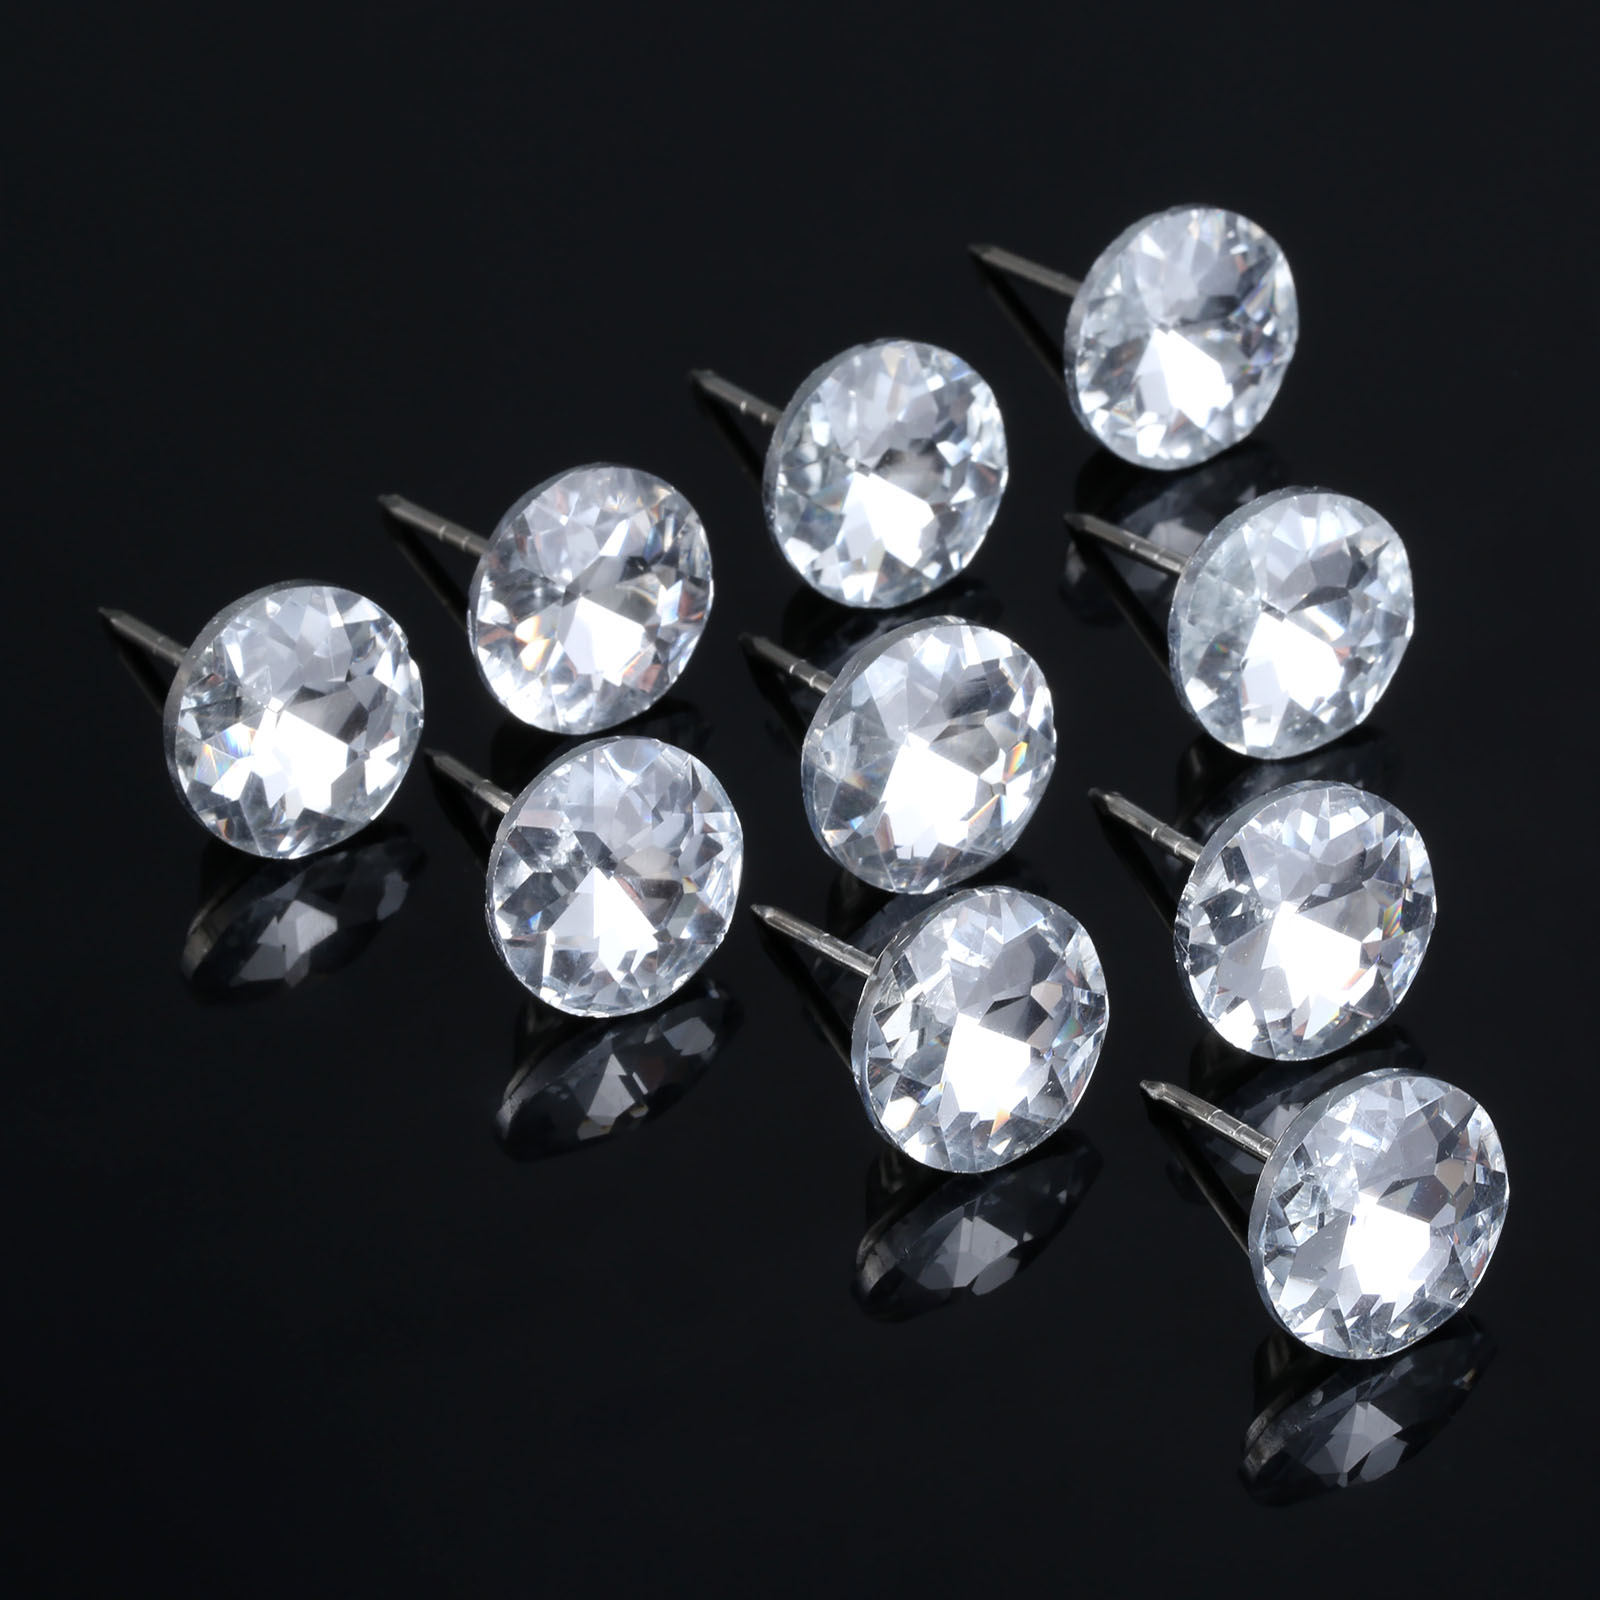 10Pcs 14/16/18/22mm Diamond Crystal Upholstery Nails Buttons Tacks Studs Pins Sofa Wall Decoration Furniture Accessory